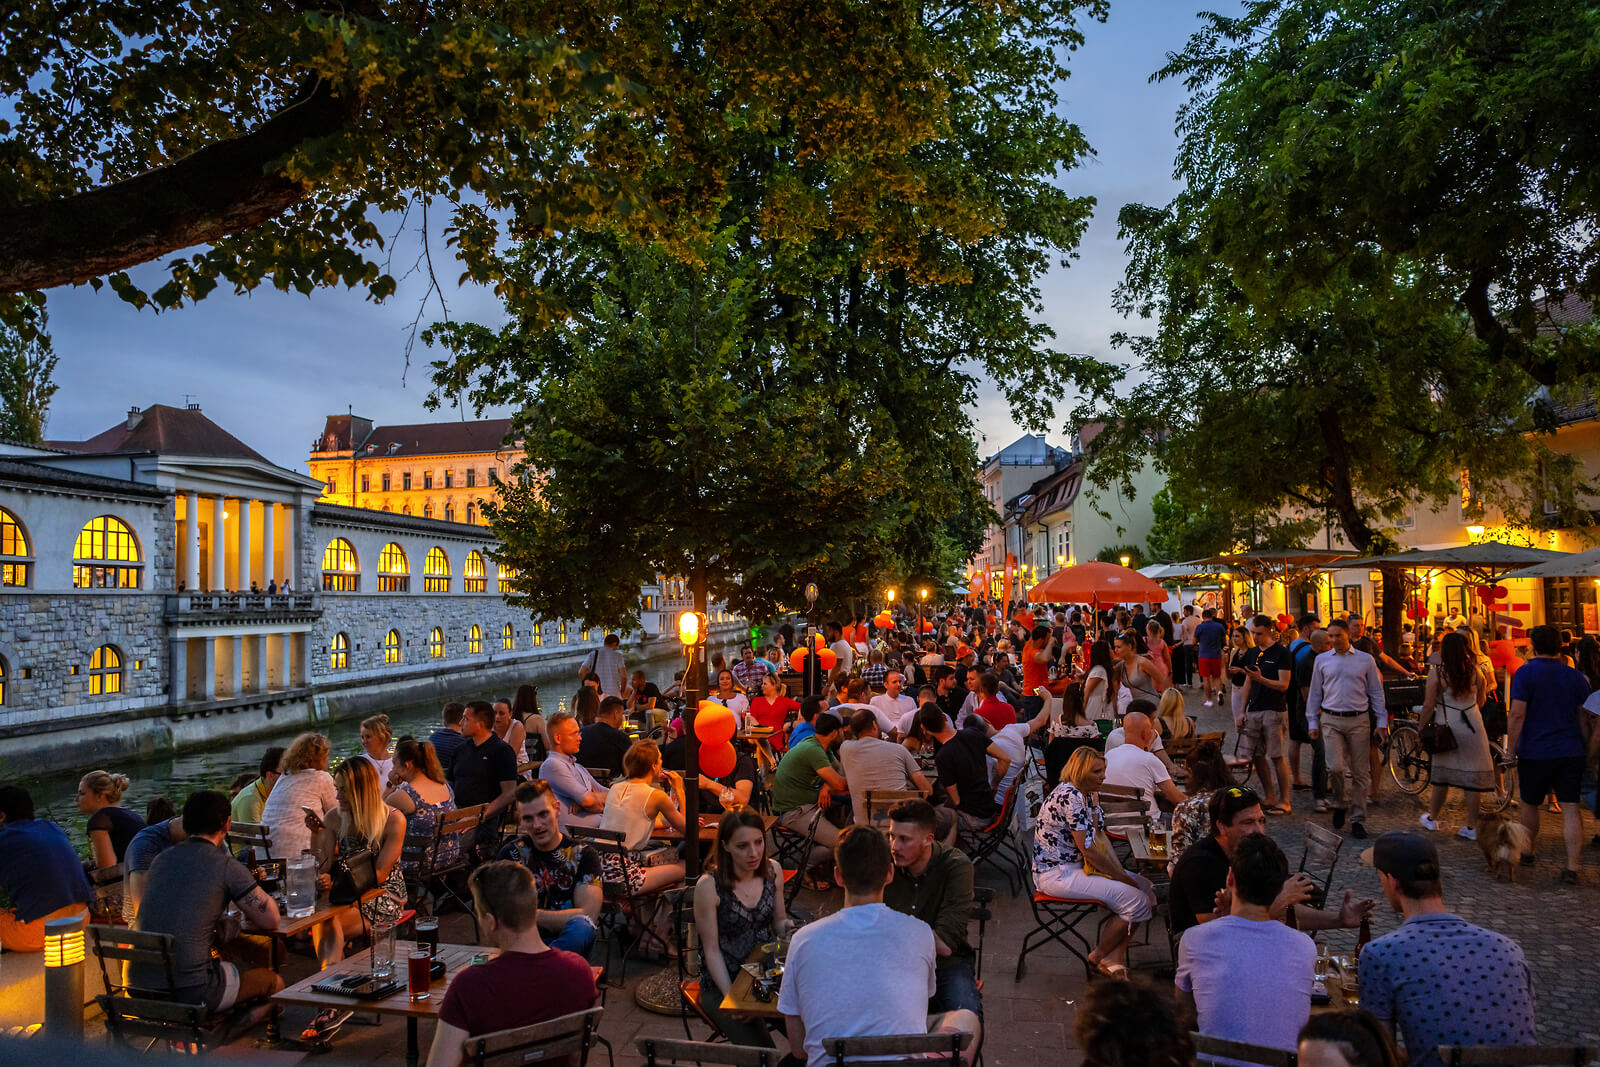 Ljubljana Old Town Riverbanks Market Atmosphere